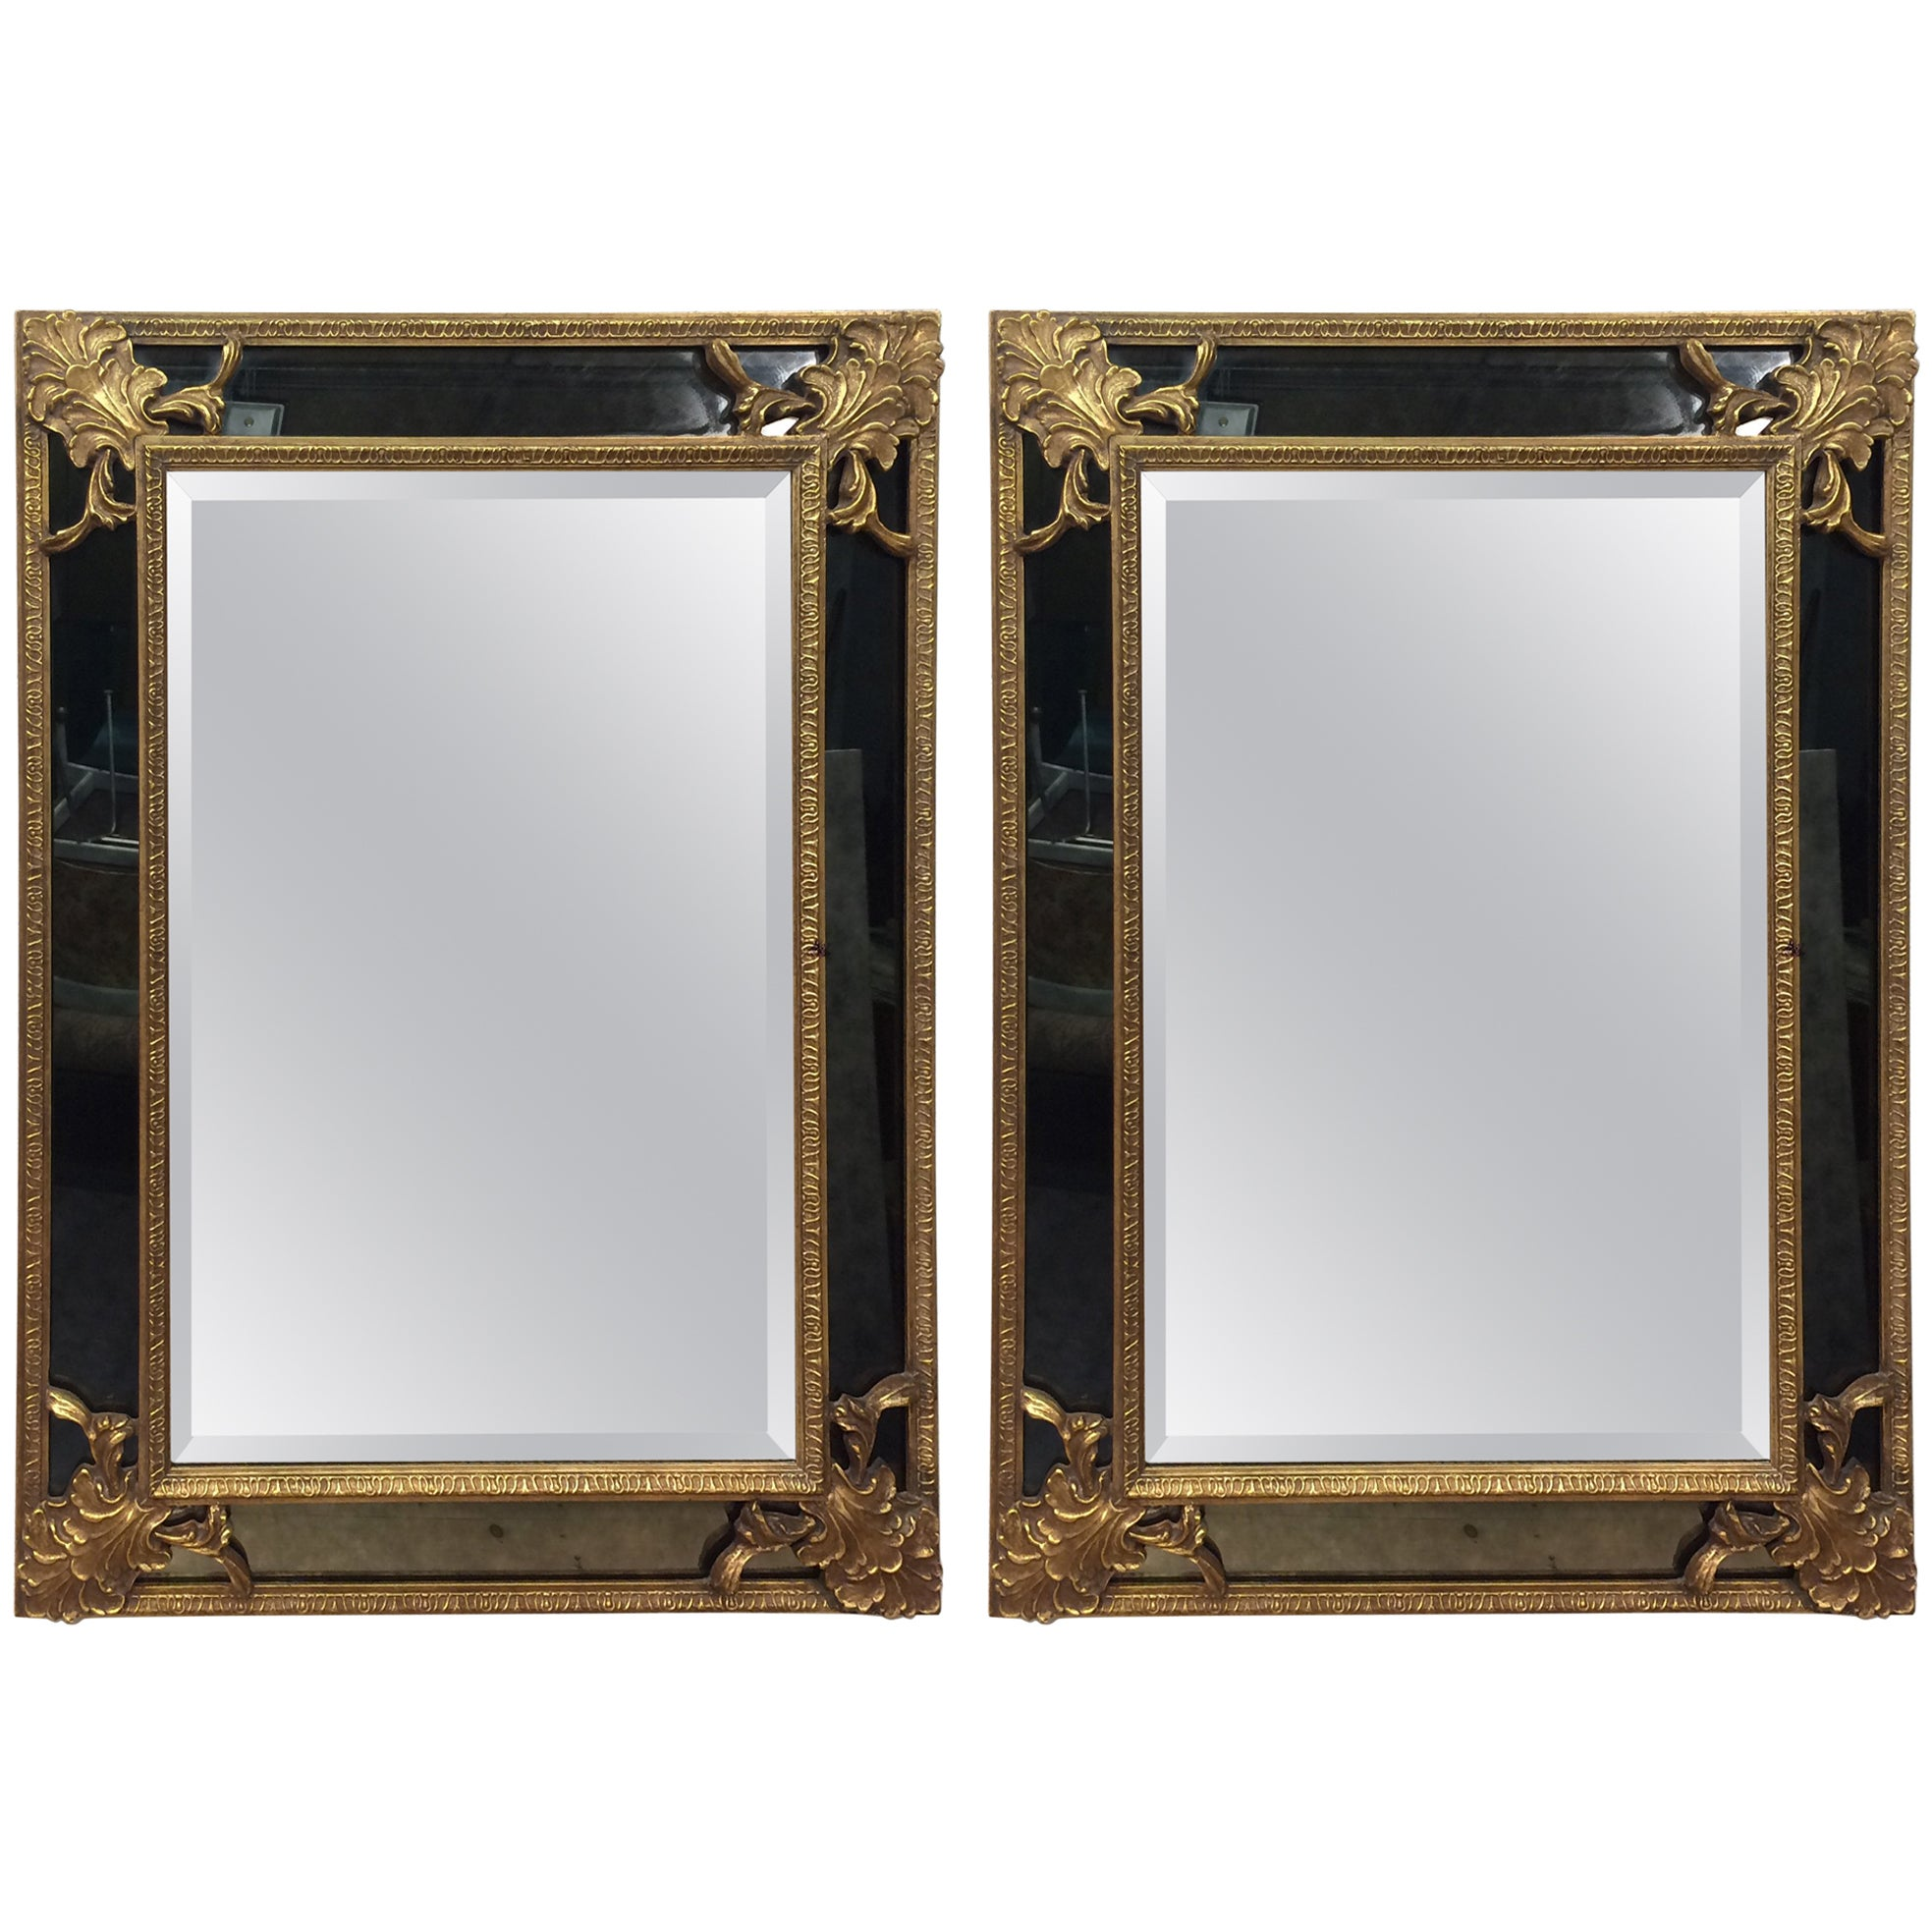 Hand-Carved Gilded Mirrors by Friedman Brothers Decorative Arts Inc